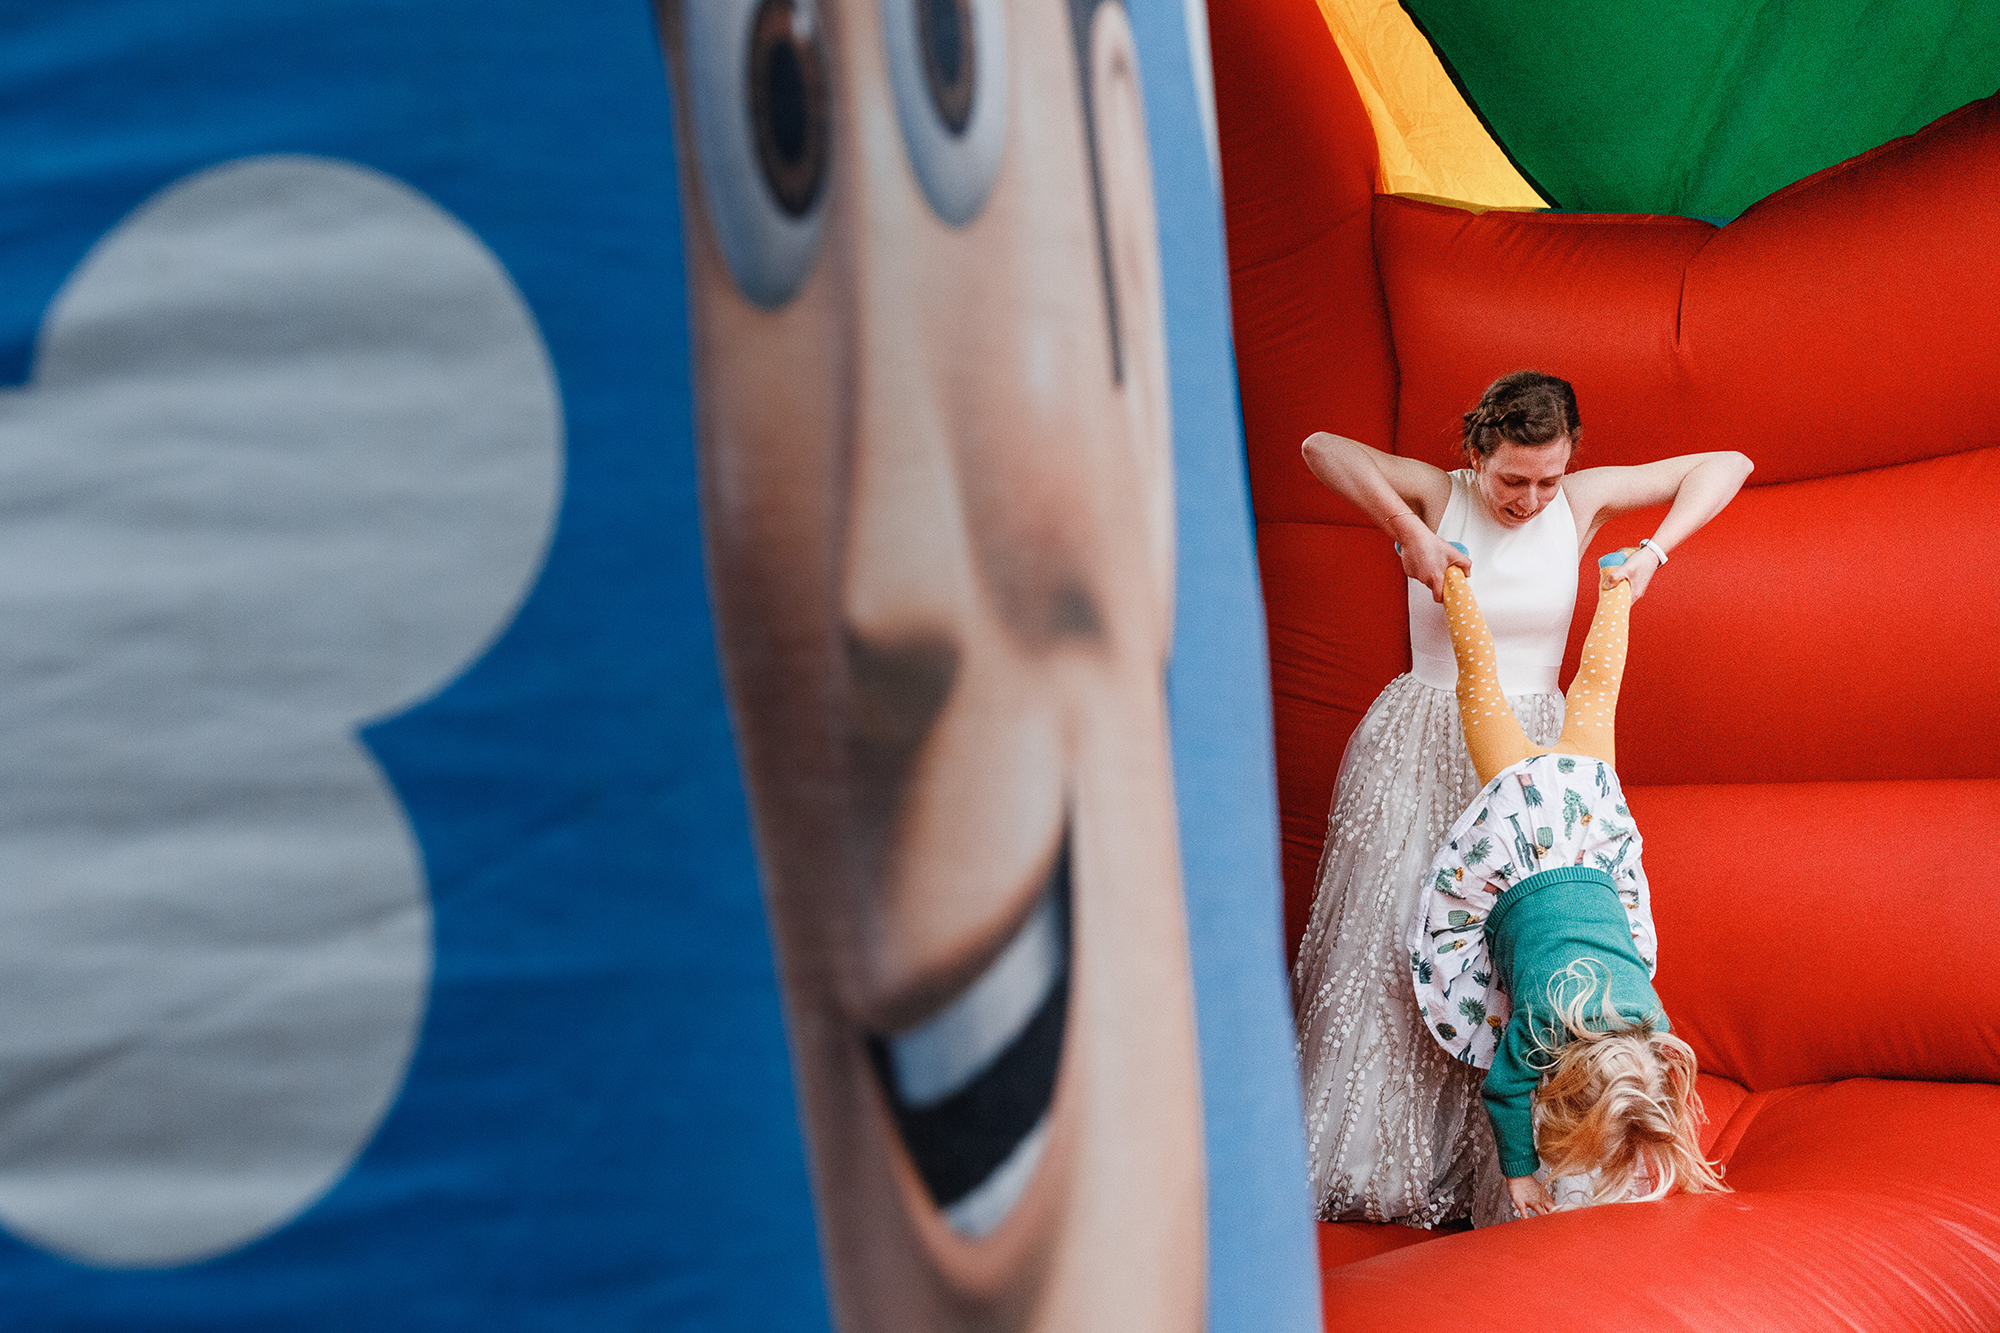 A bride holding a child upside down on a bouncy castle